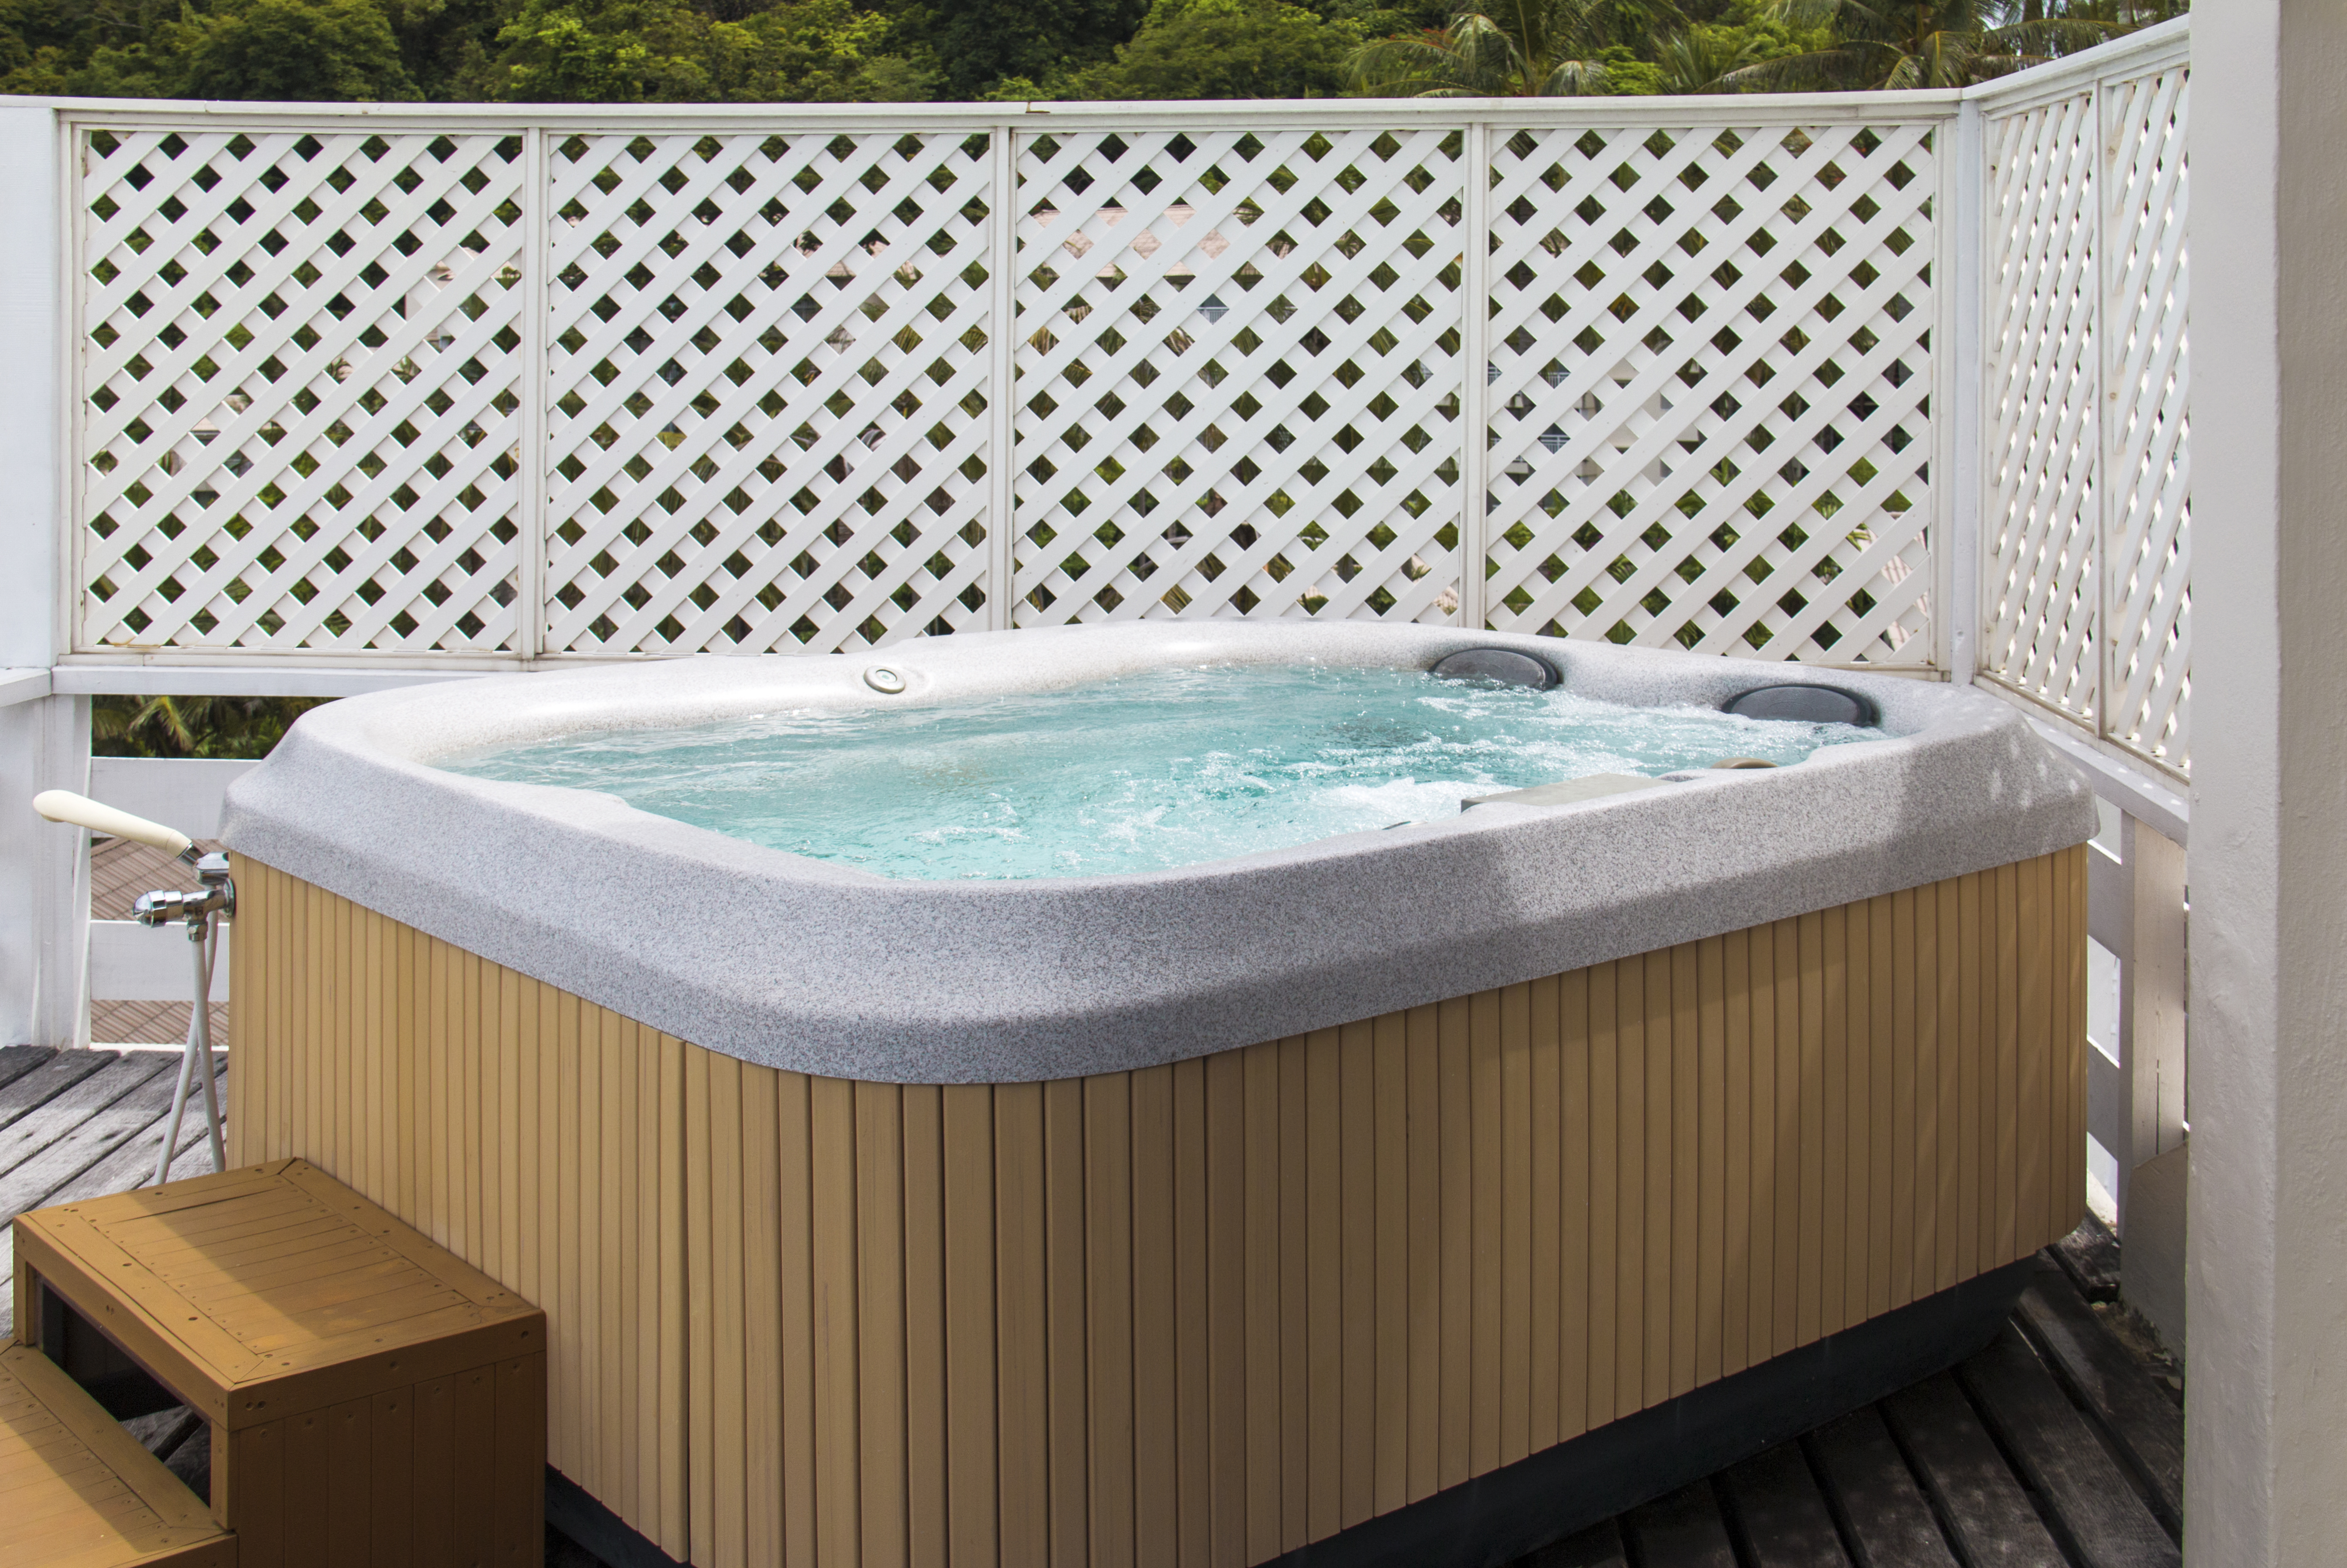 How to Raise the Alkalinity in a Hot Tub Without Chemicals